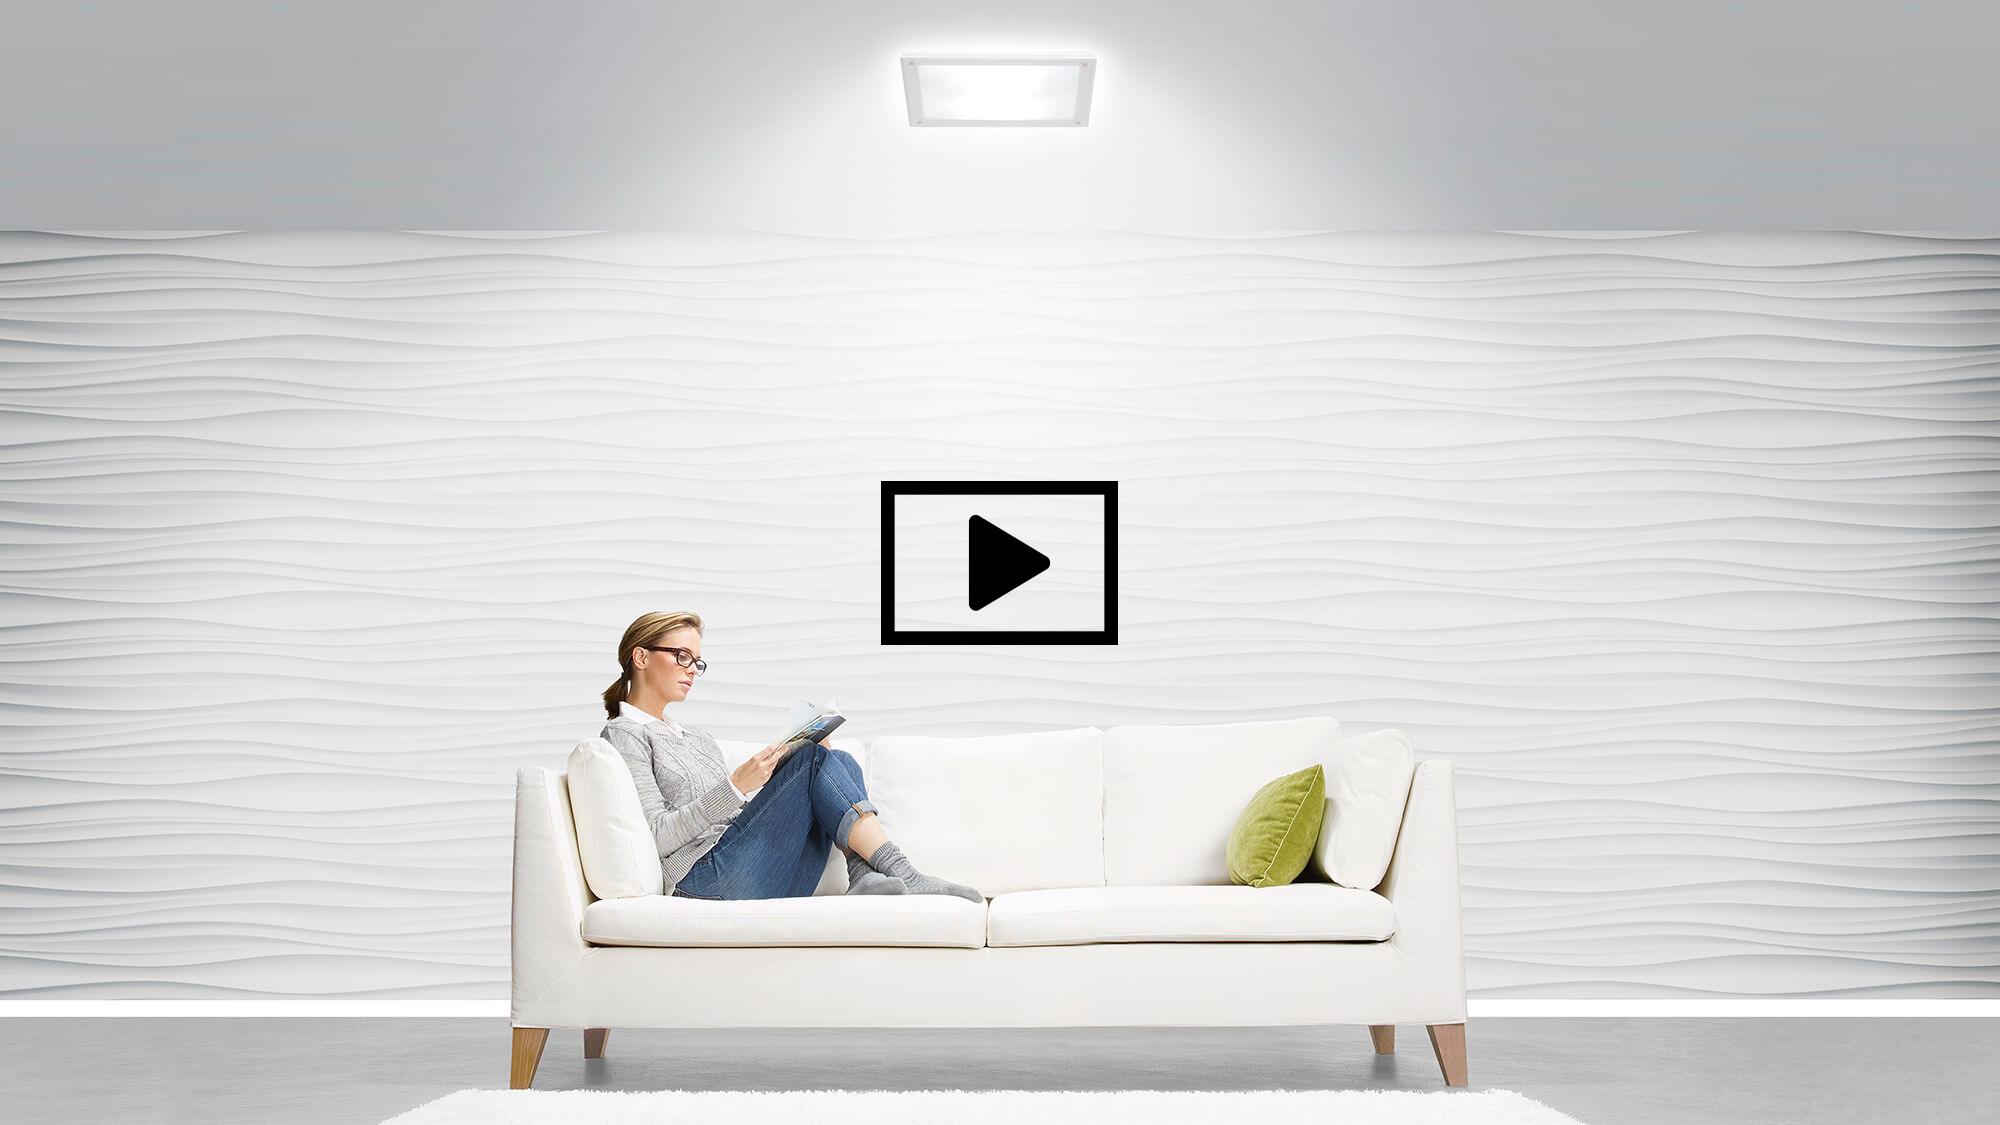 Daylighting Systems | Energy-efficient, Affordable Natural